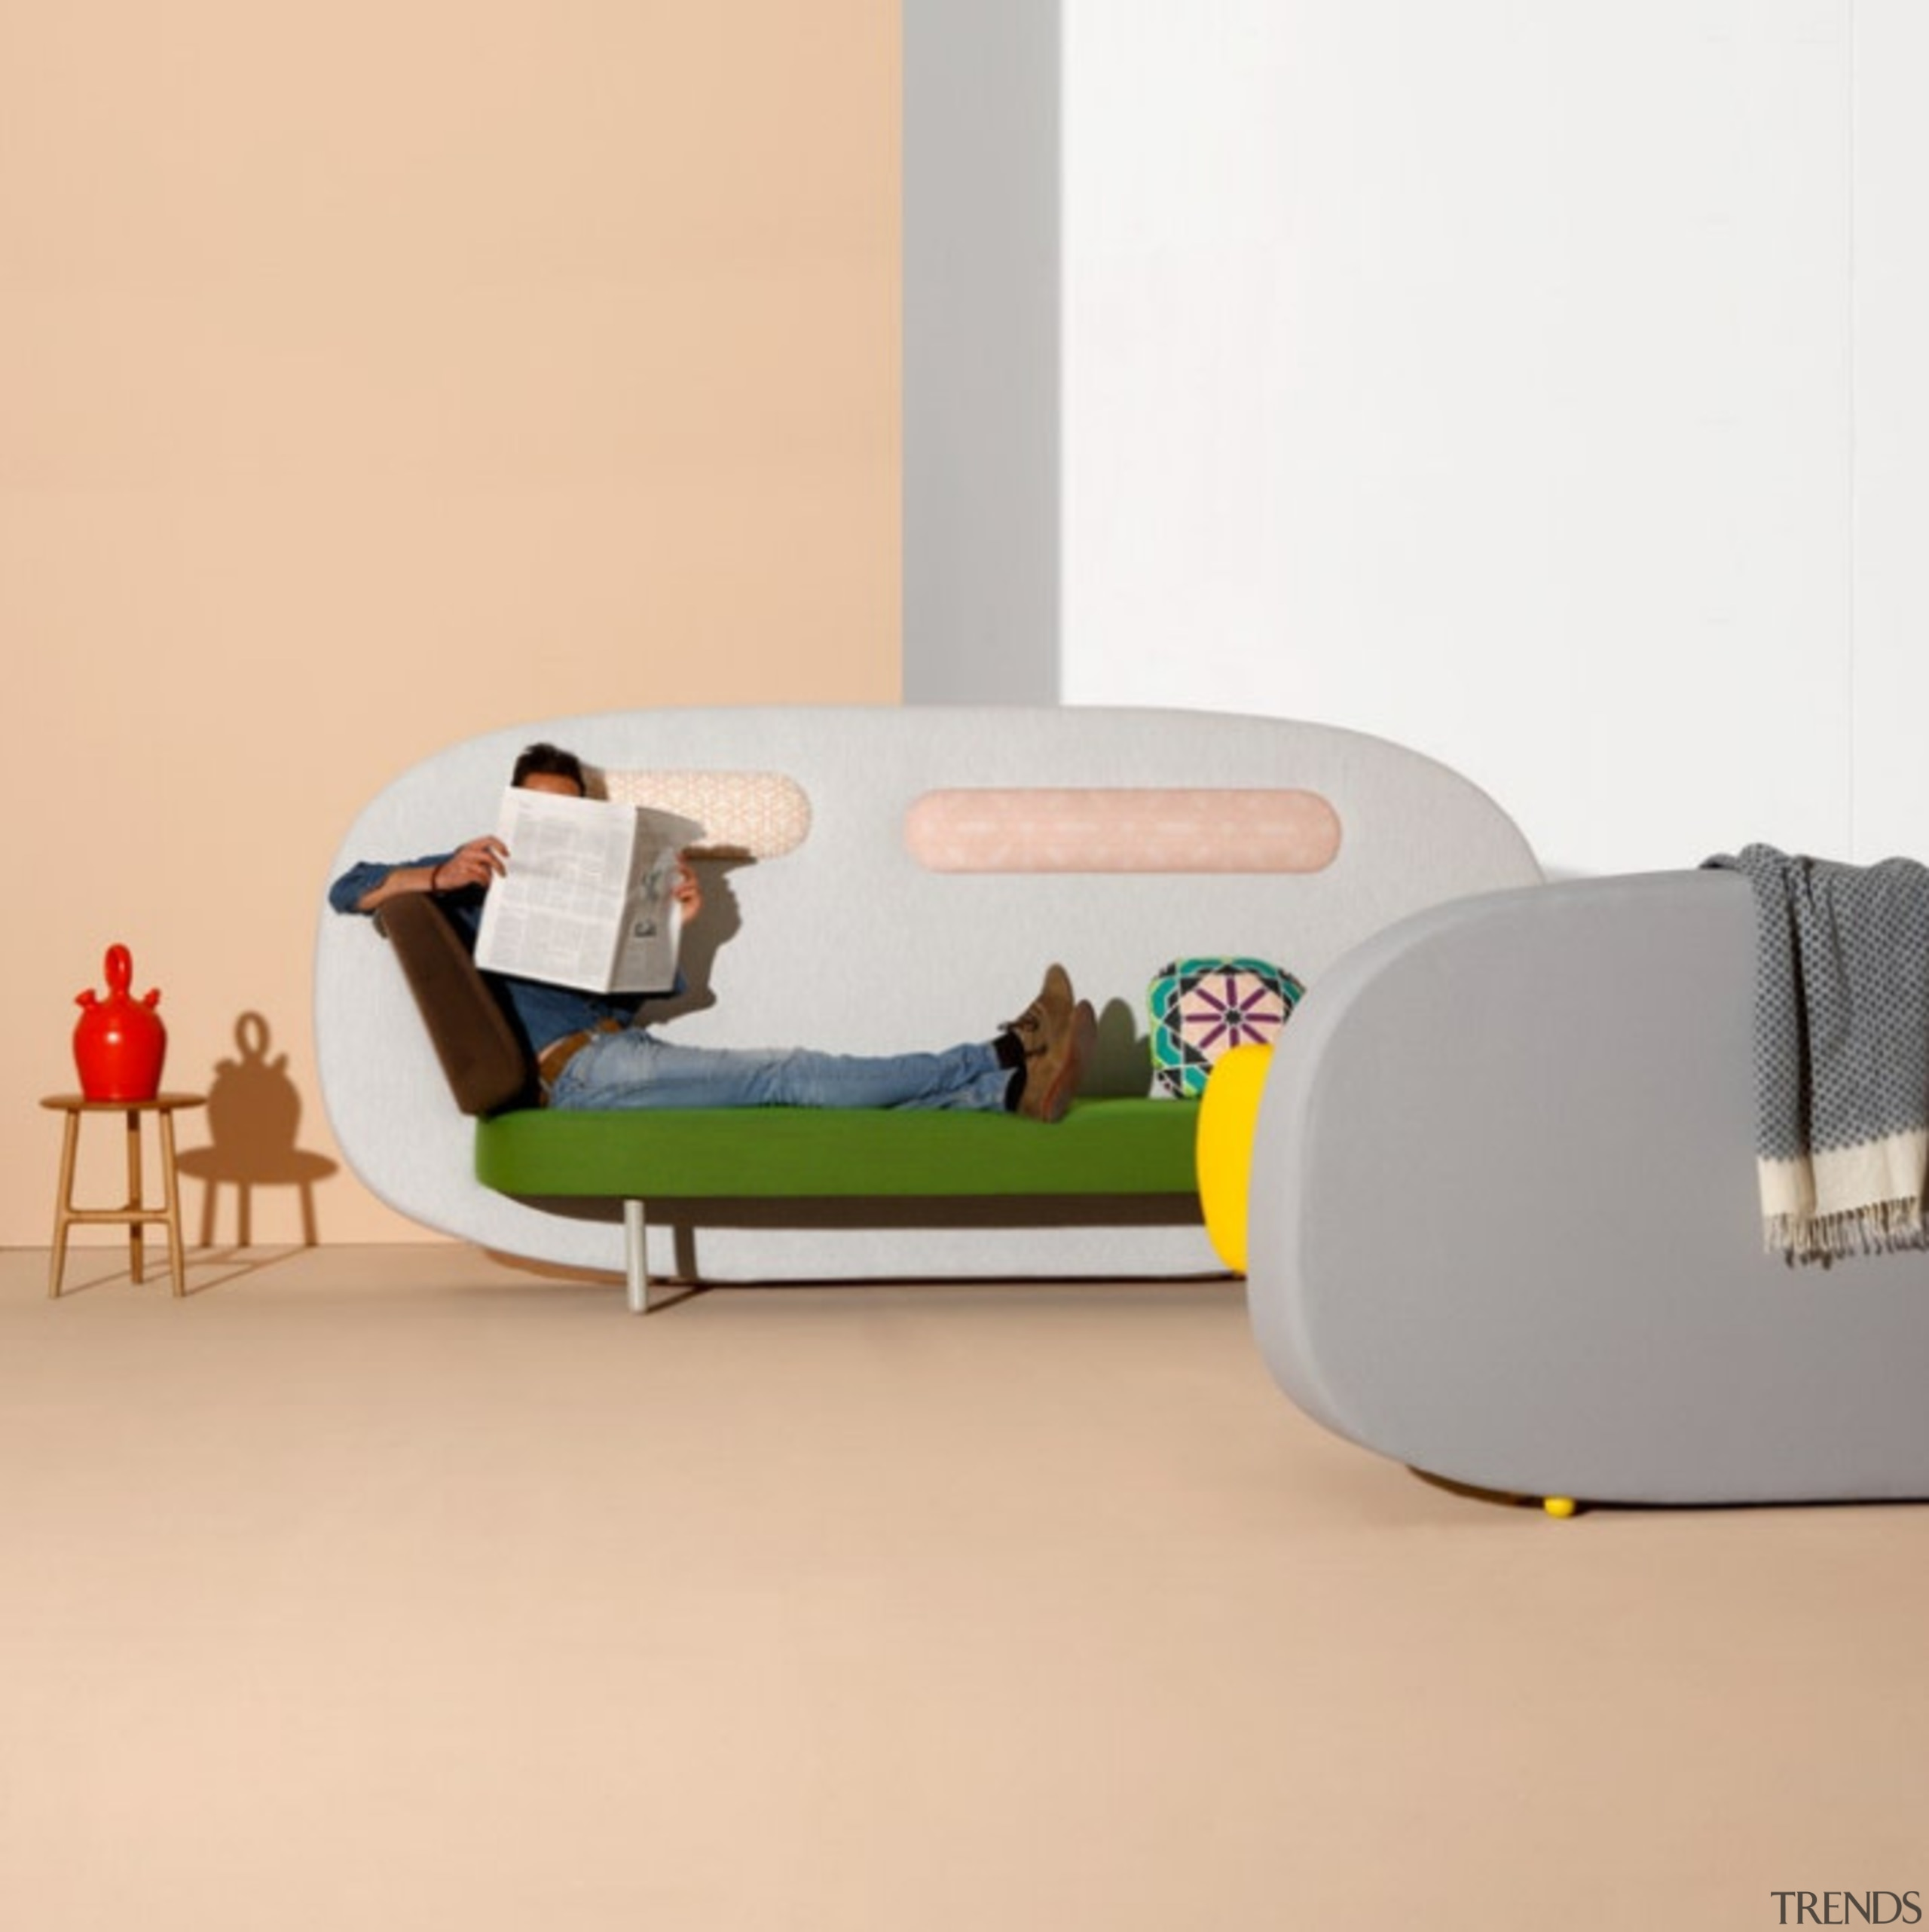 A playful mix of shapes, colours and textures couch, furniture, product, product design, table, white, orange